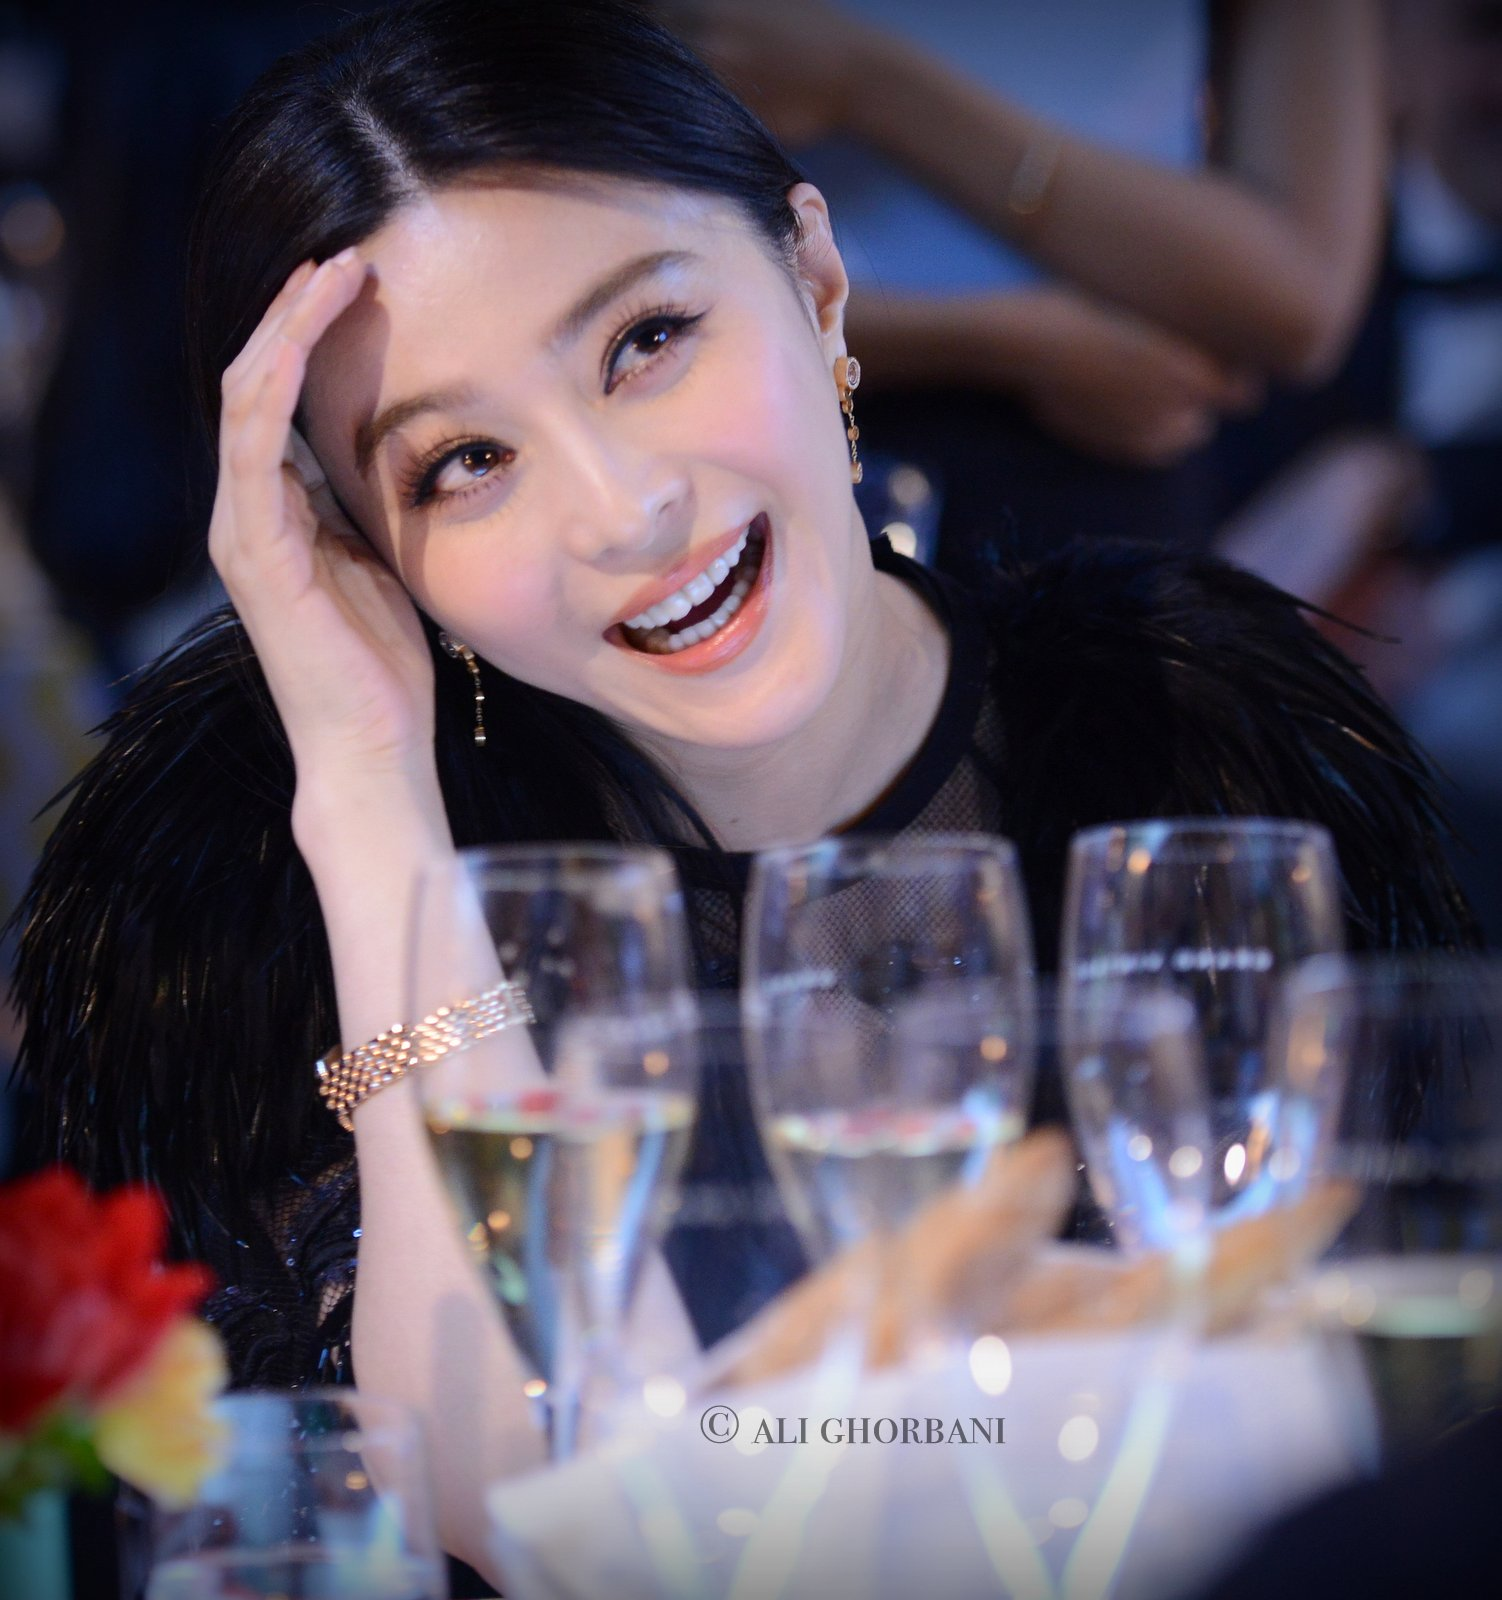 Events Photographer Hong Kong - Fan Bing bing